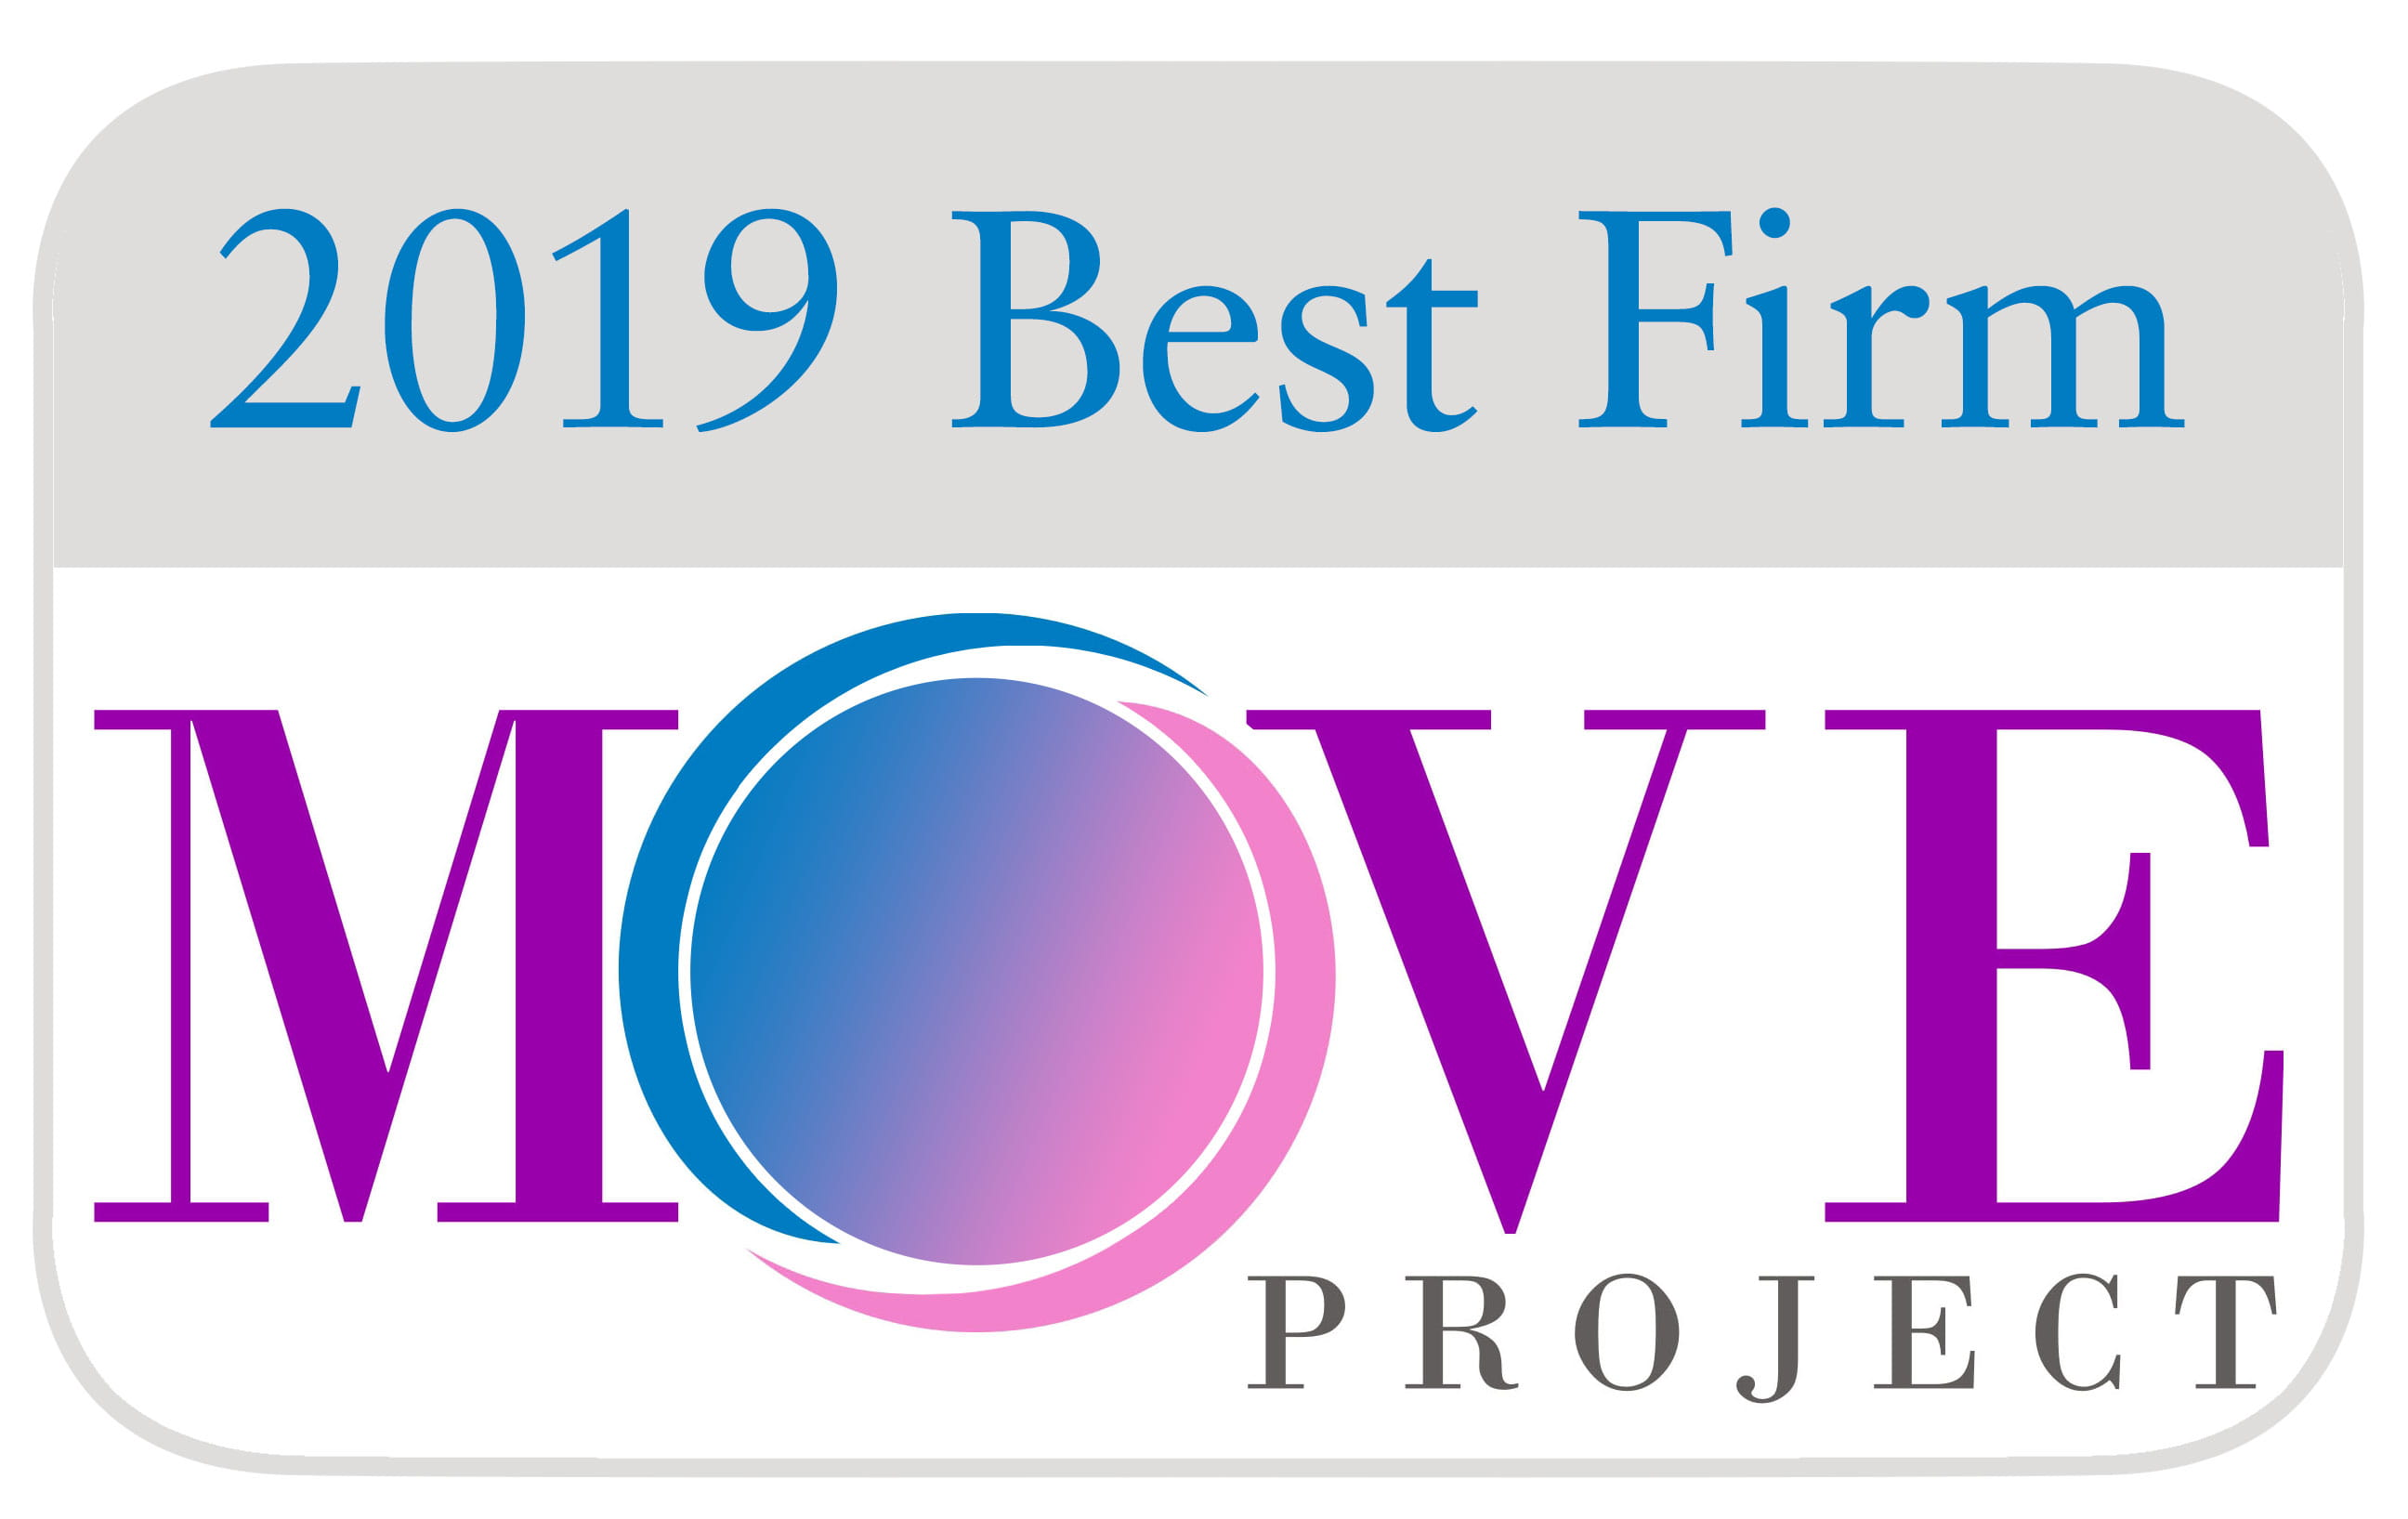 2019 Best Firm Move